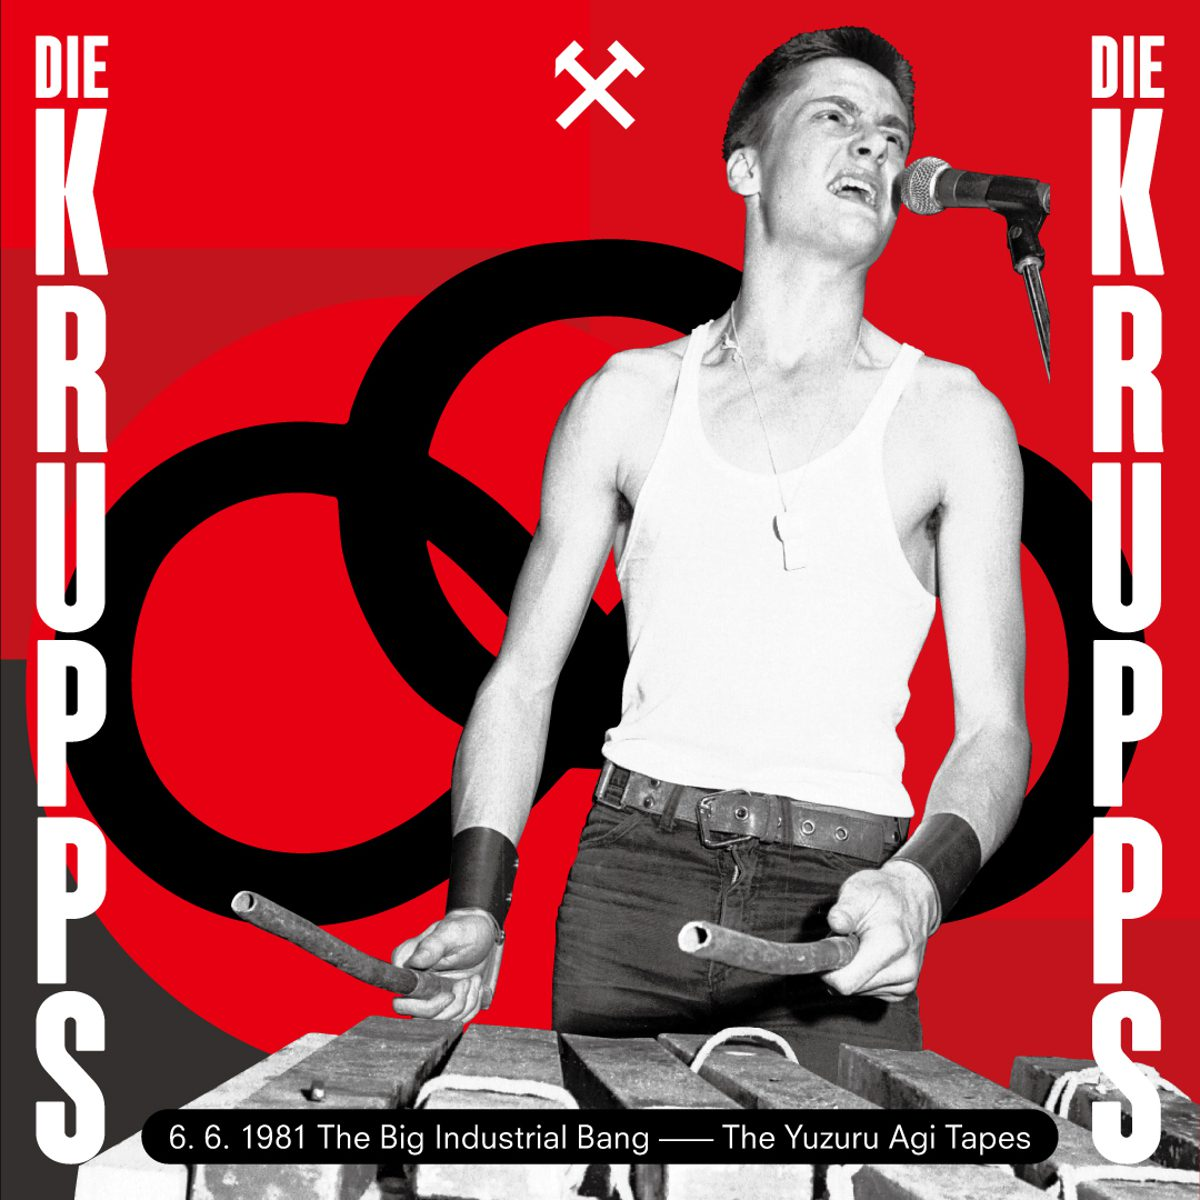 Die Krupps first 1981 live recording to be released as 'The Big Industrial Bang'